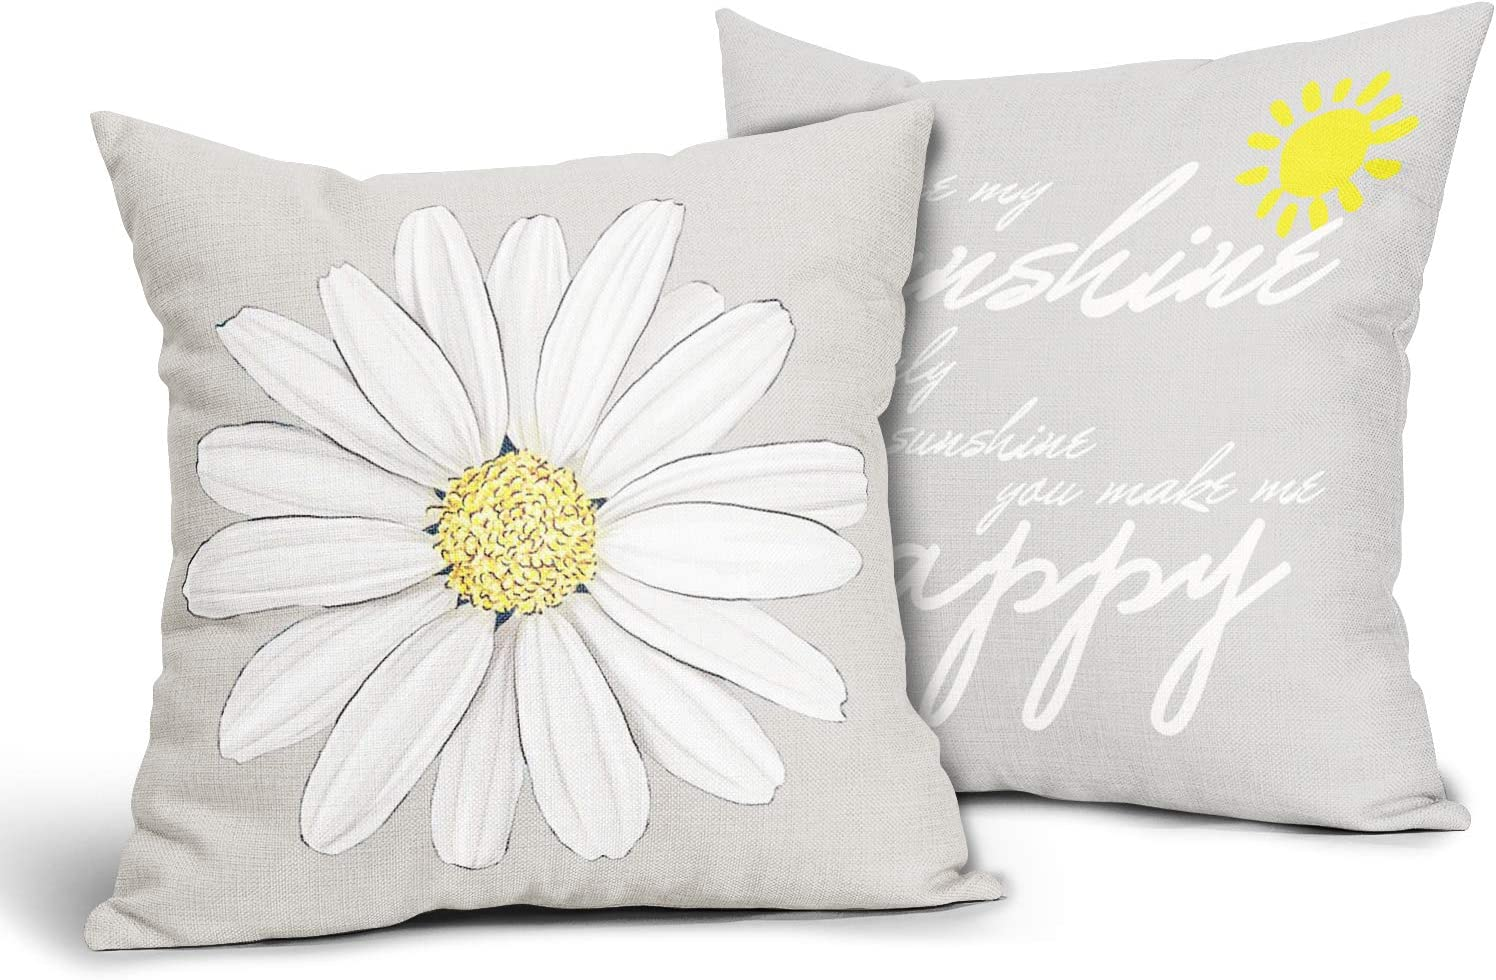 Daisy Pillow Covers 18x18,Sunflower Pillow Cases Yellow and Beige Pillows Set of 2,Summer Sunshine Farmhouse Decor Square Cushion Cover Suitable for Men Women Girls Boys Couch Bedroom Livingroom